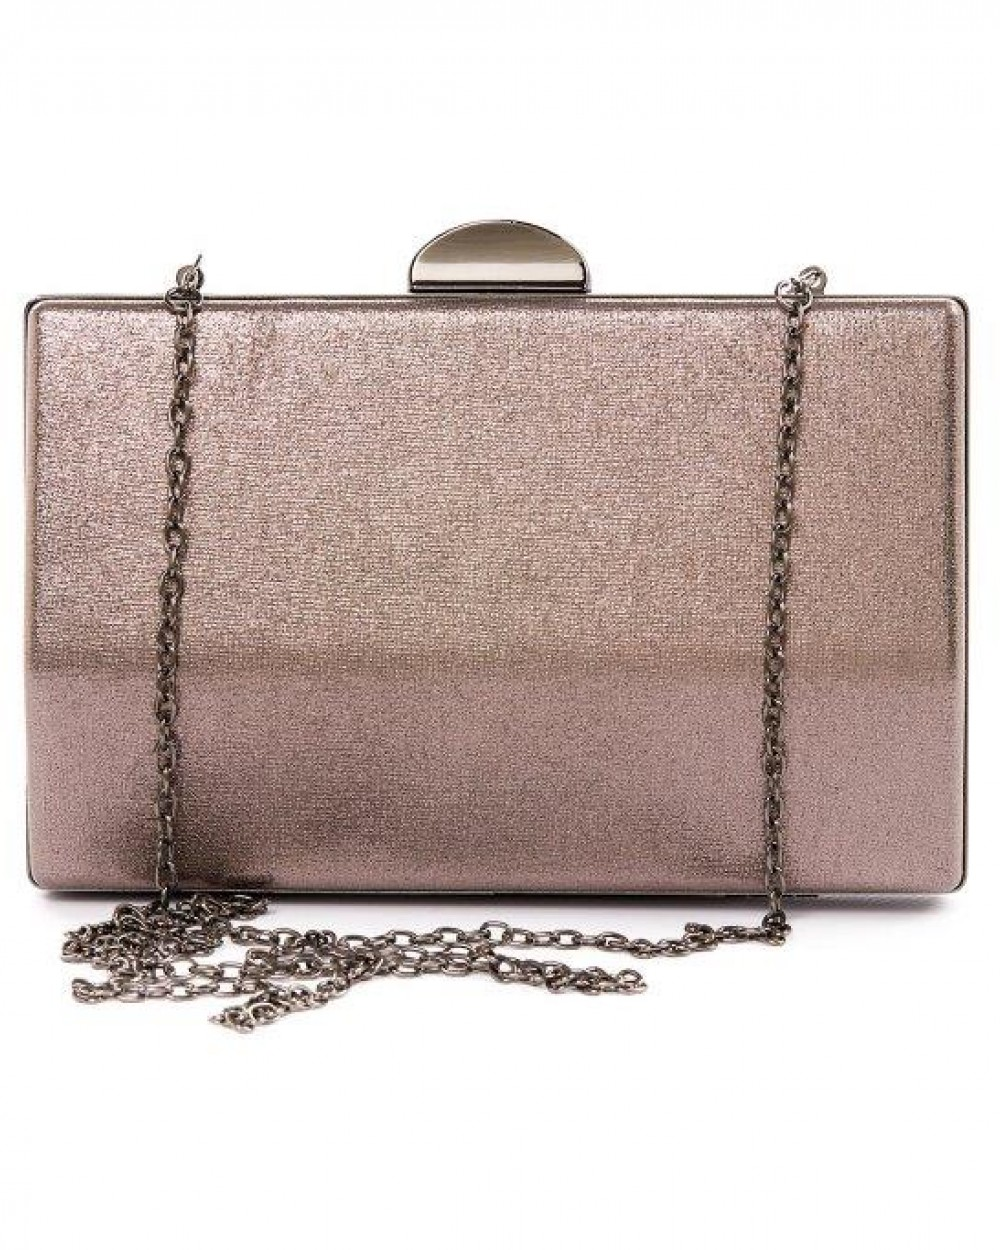 a0a99016eb Τσαντάκι VERDE βραδινό clutch taupe